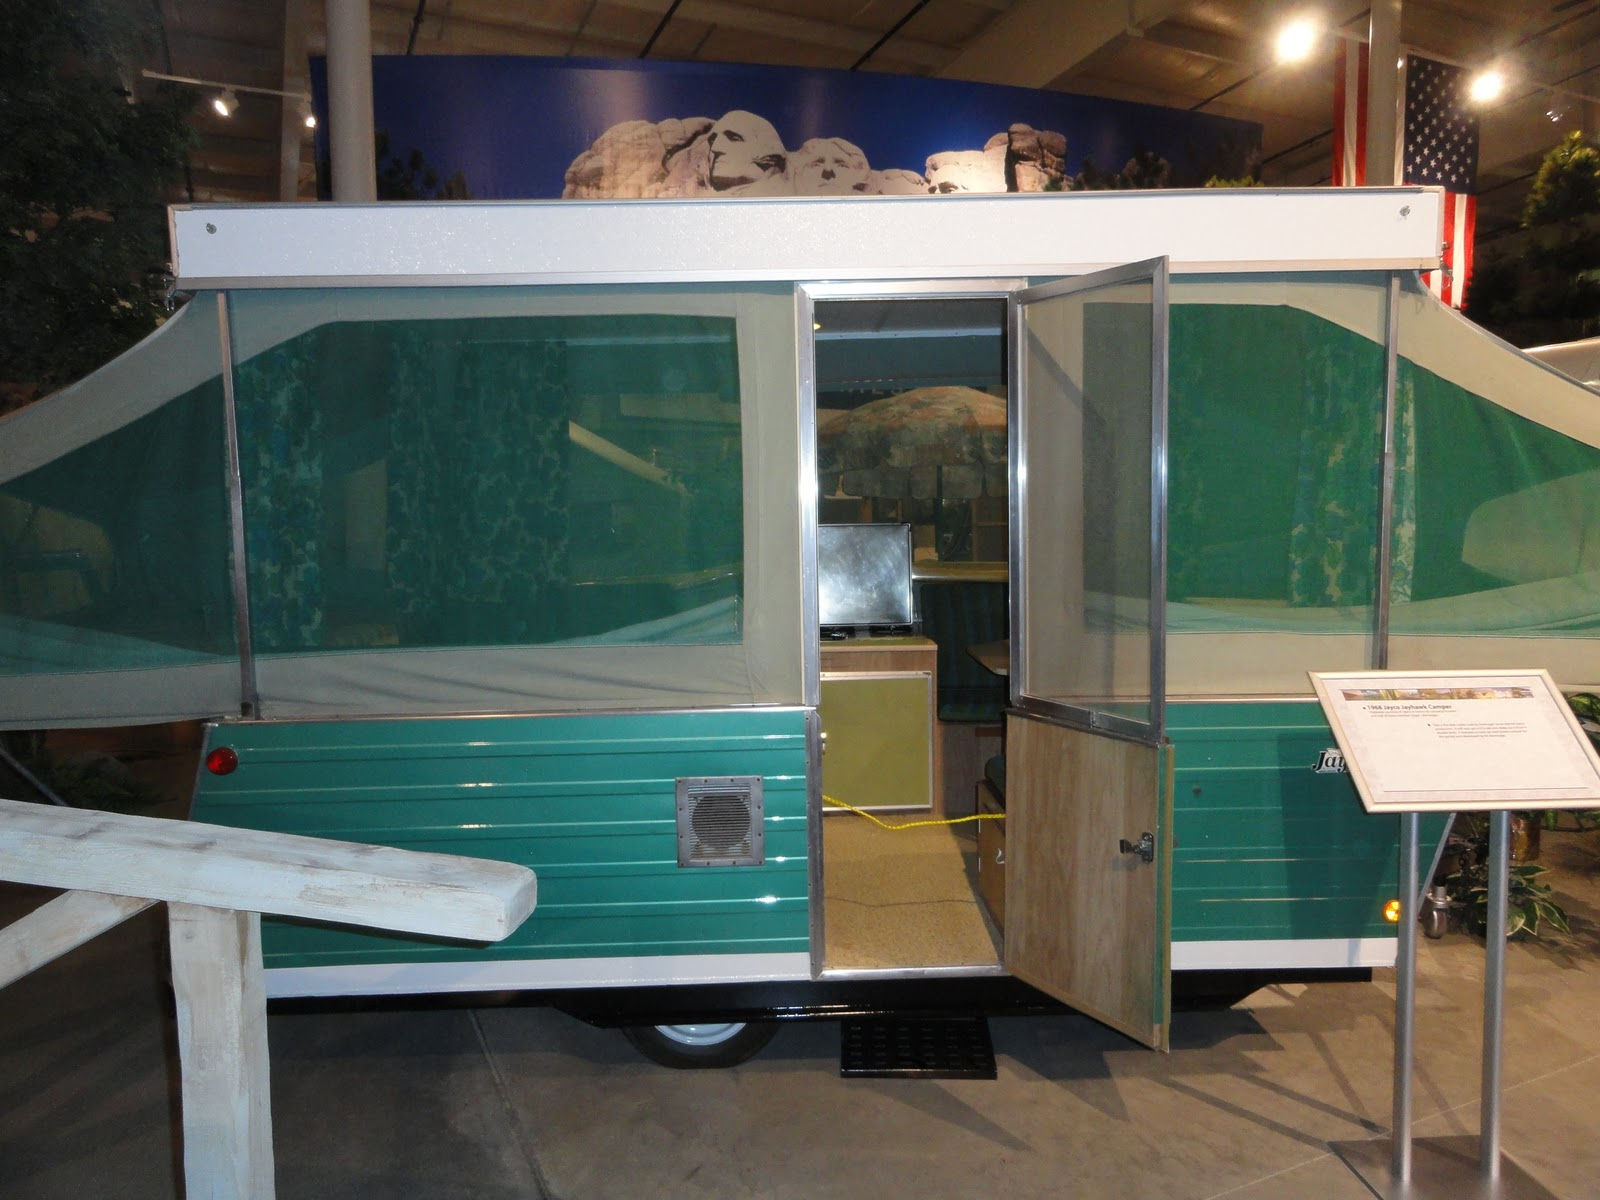 New Quirky Attraction RV Hall Of Fame  Quirky Travel Guy